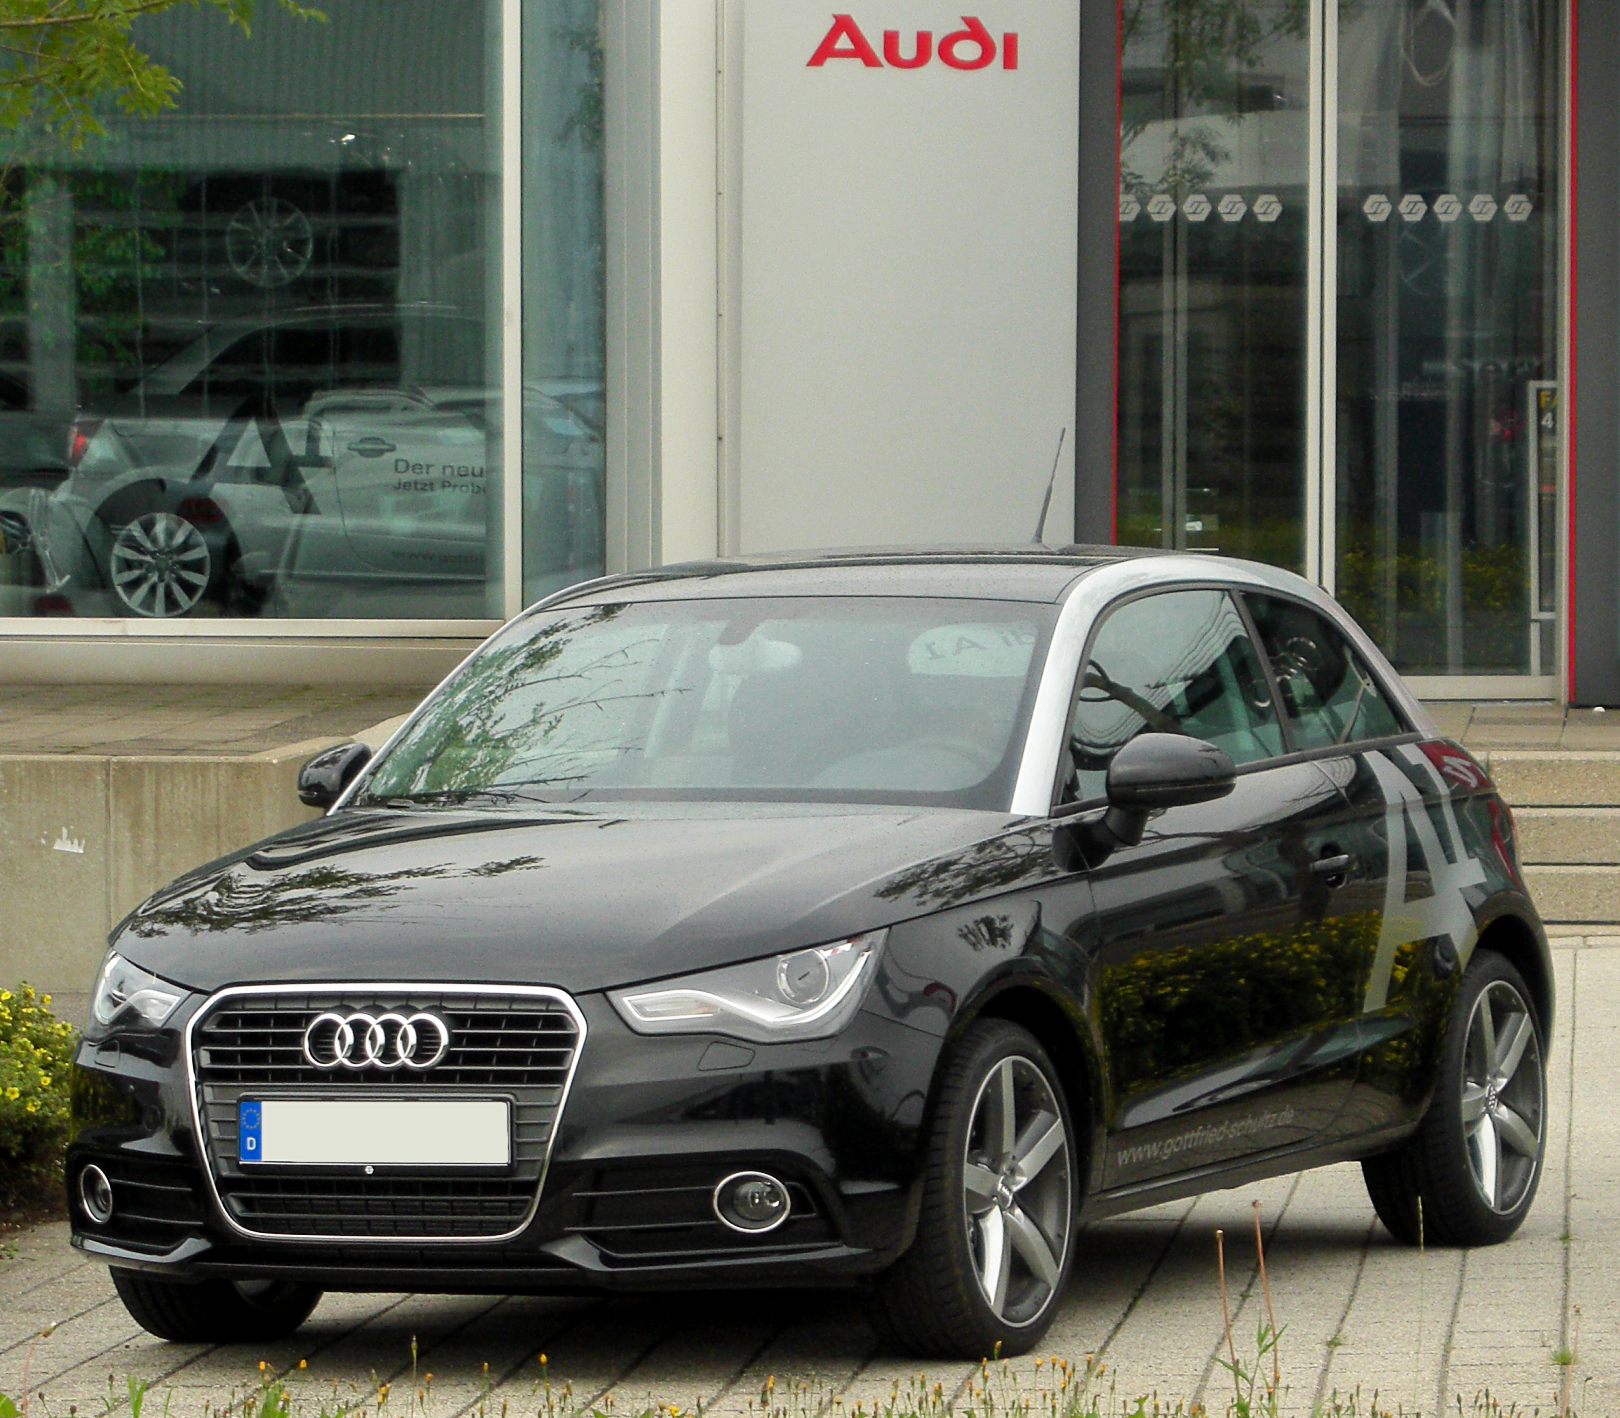 Audi A1 3 Door Hatchback 2011